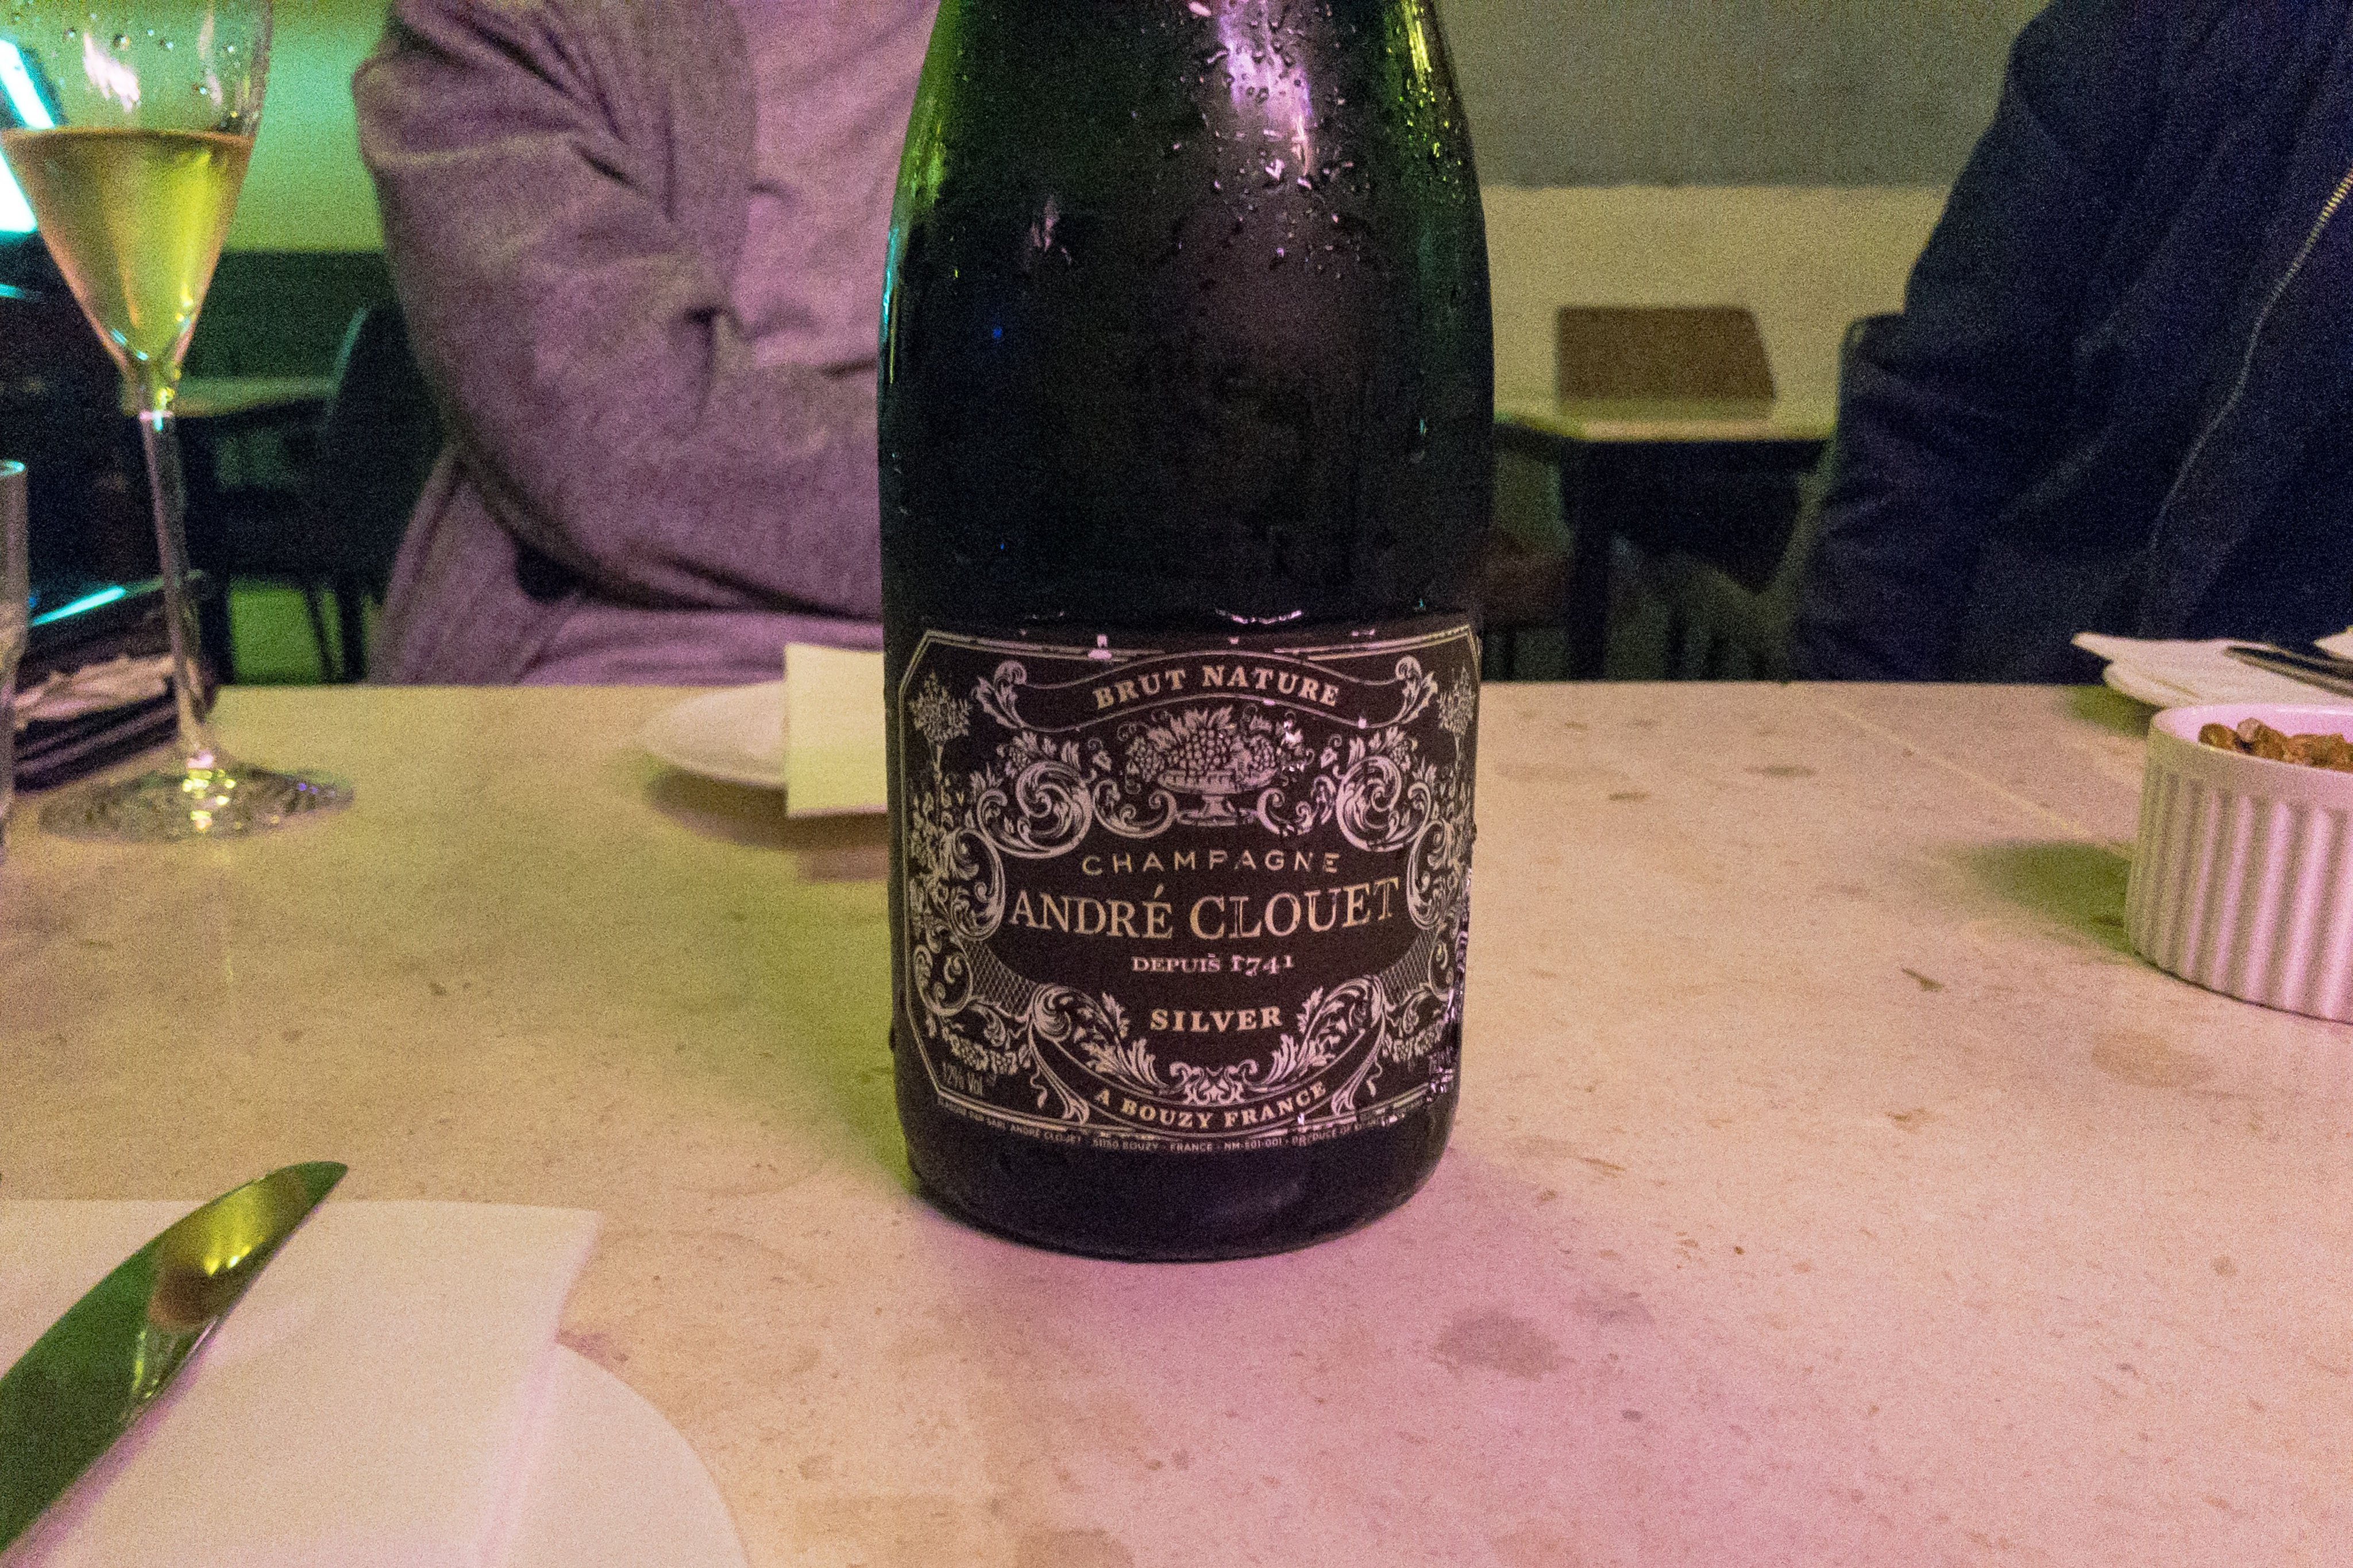 Andre Clouet Silver Brut